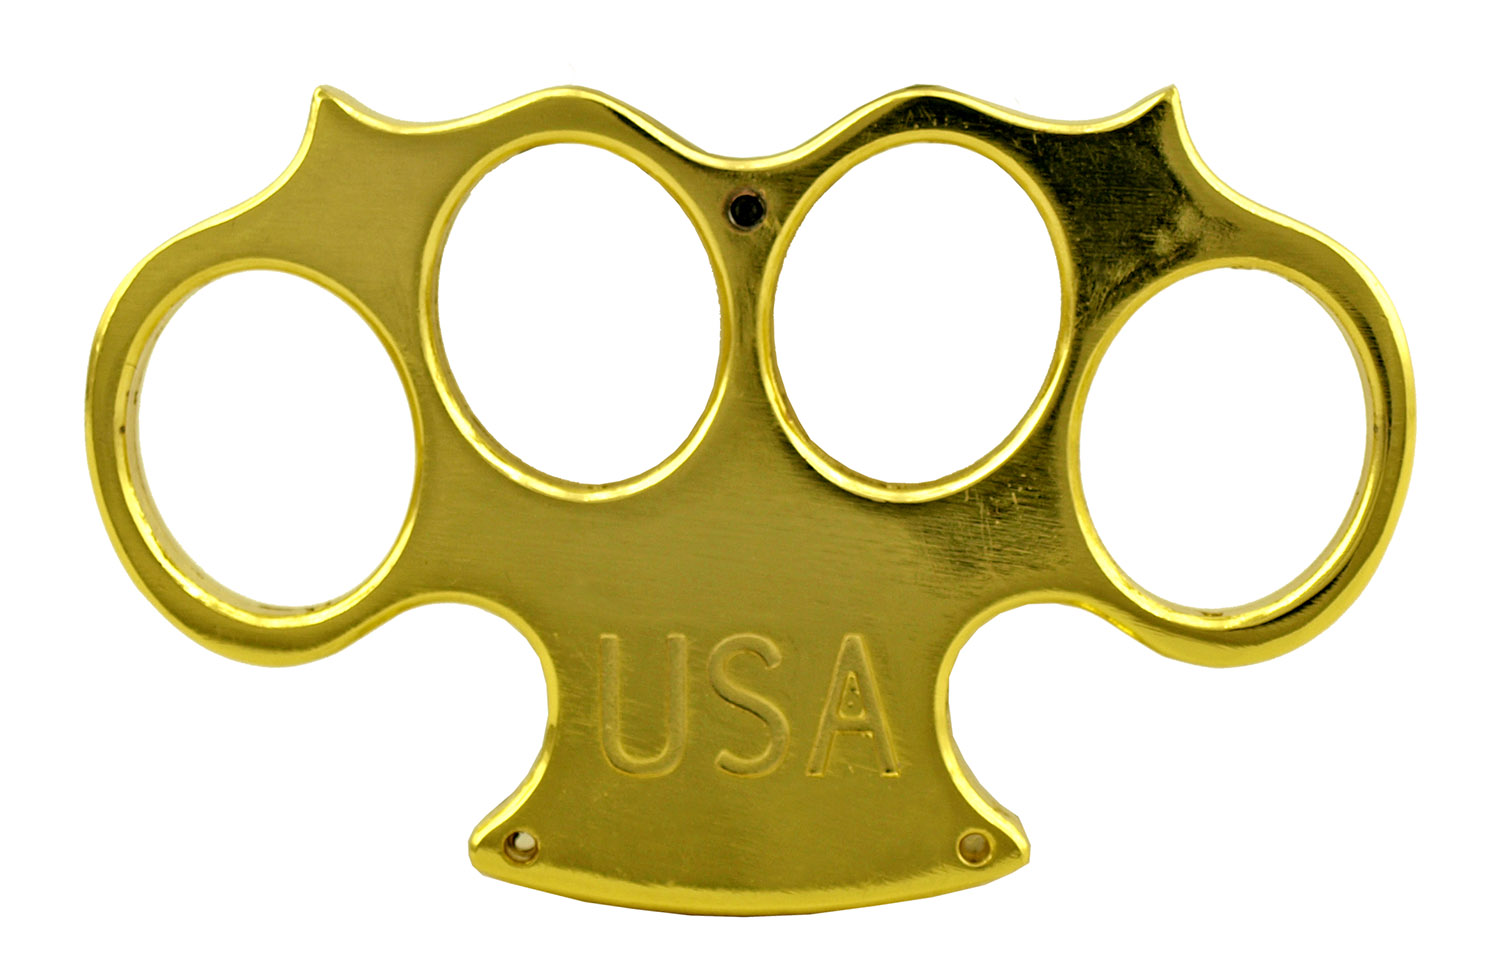 Traditional Old School US Marshall Brass Knuckles Duster Belt Buckle with Prong Attachment - Gold